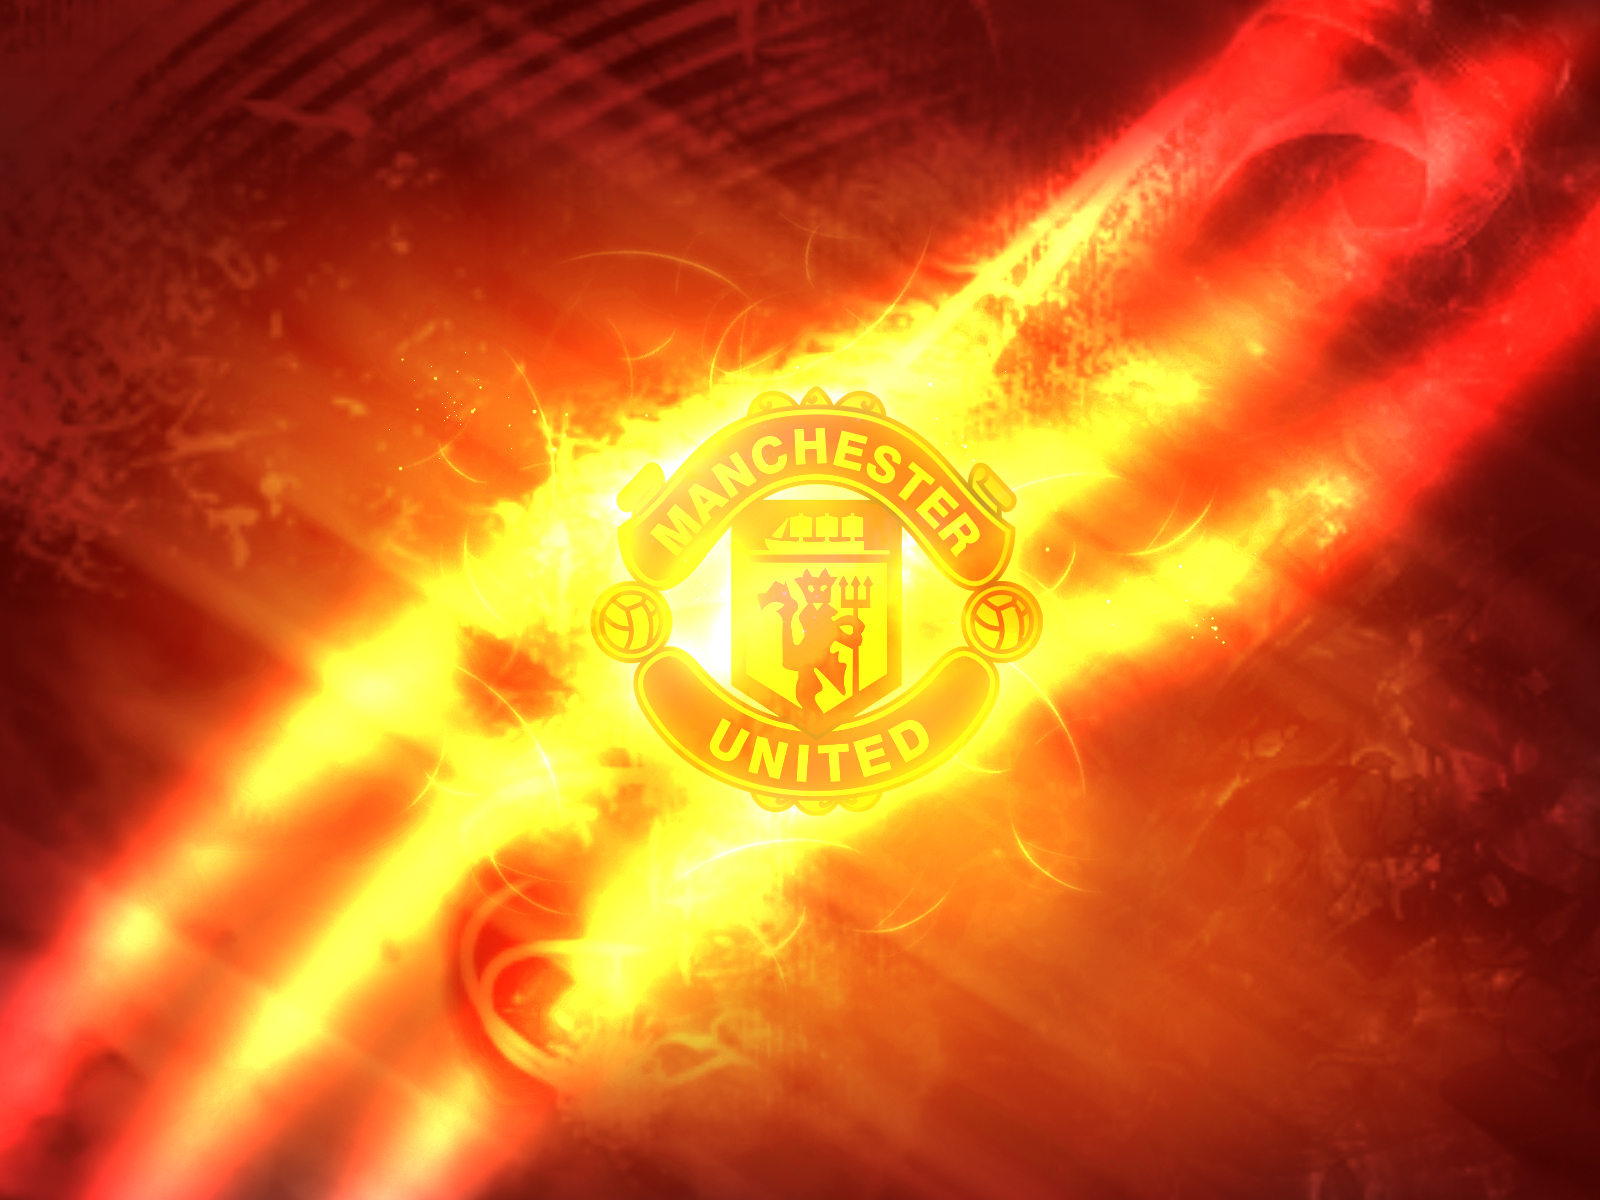 Free Download Manchester United Logo Wallpapers Hd Collection Download 1600x1200 For Your Desktop Mobile Tablet Explore 50 Manchester United Hd Wallpapers Manchester United Wallpaper Manchester United Logo Wallpaper Man